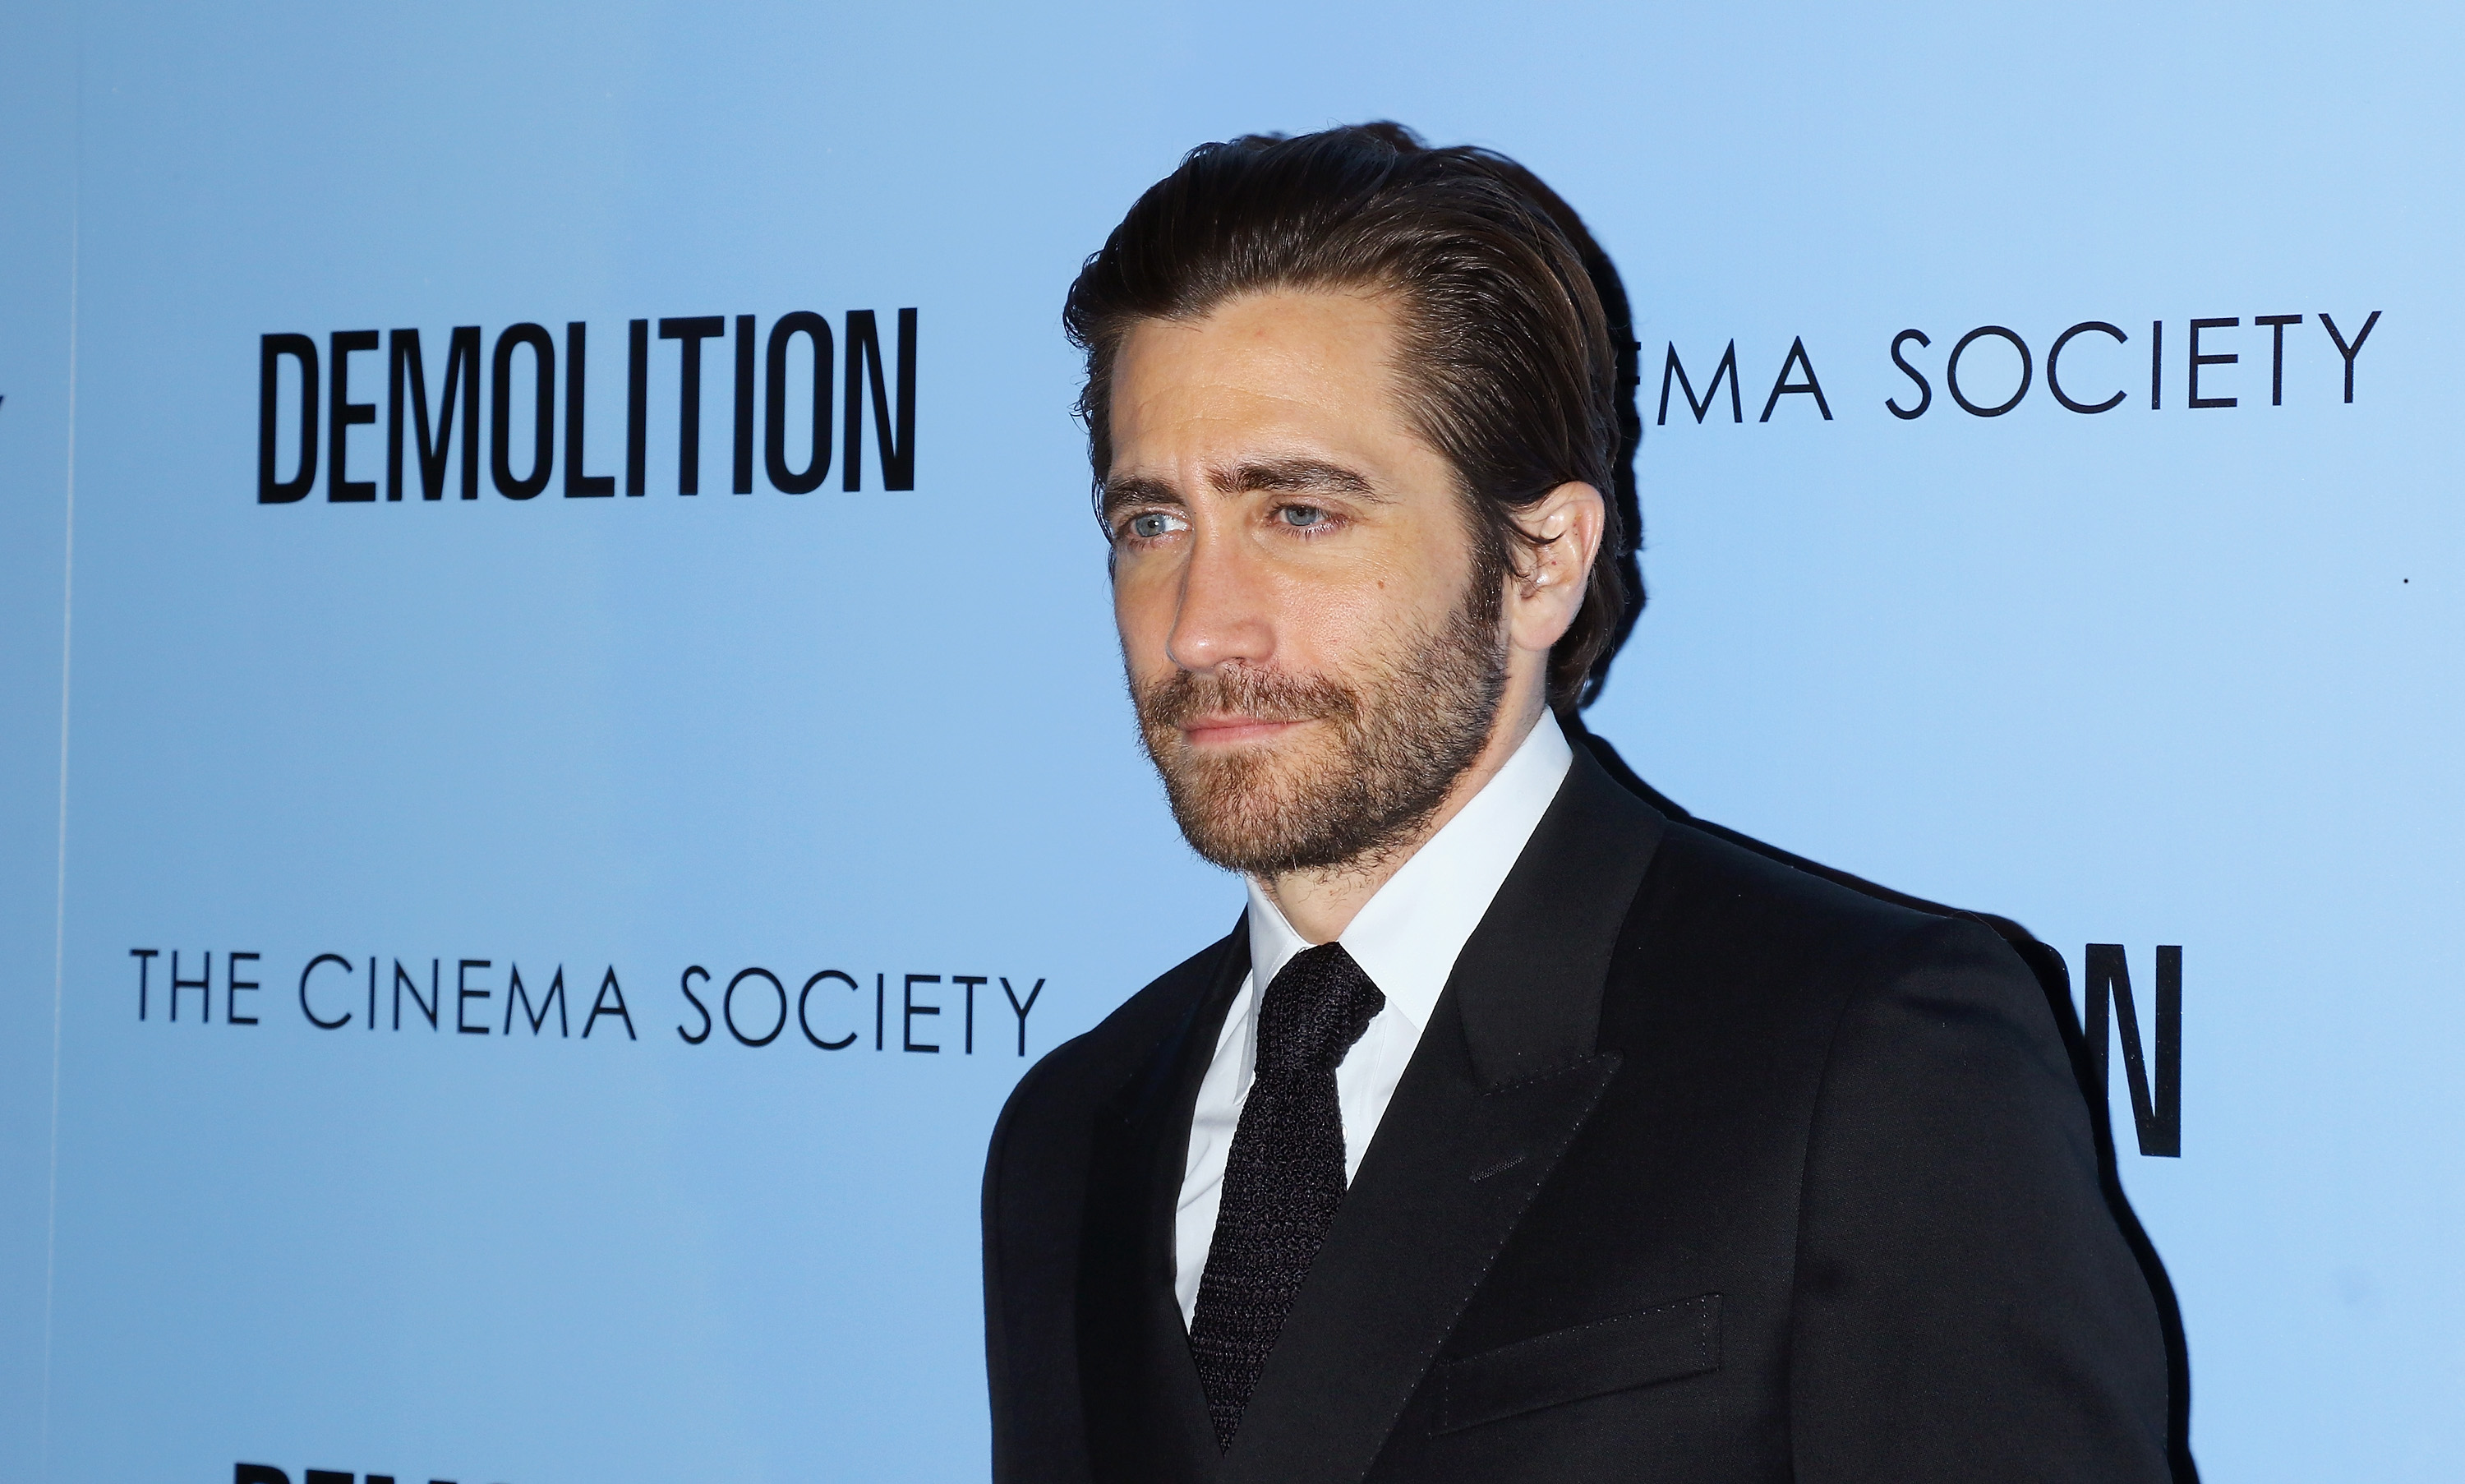 Actor Jake Gyllenhaal attends the Fox Searchlight Pictures with The Cinema Society host a screening of  Demolition  at the SVA Theater on March 21, 2016 in New York City.